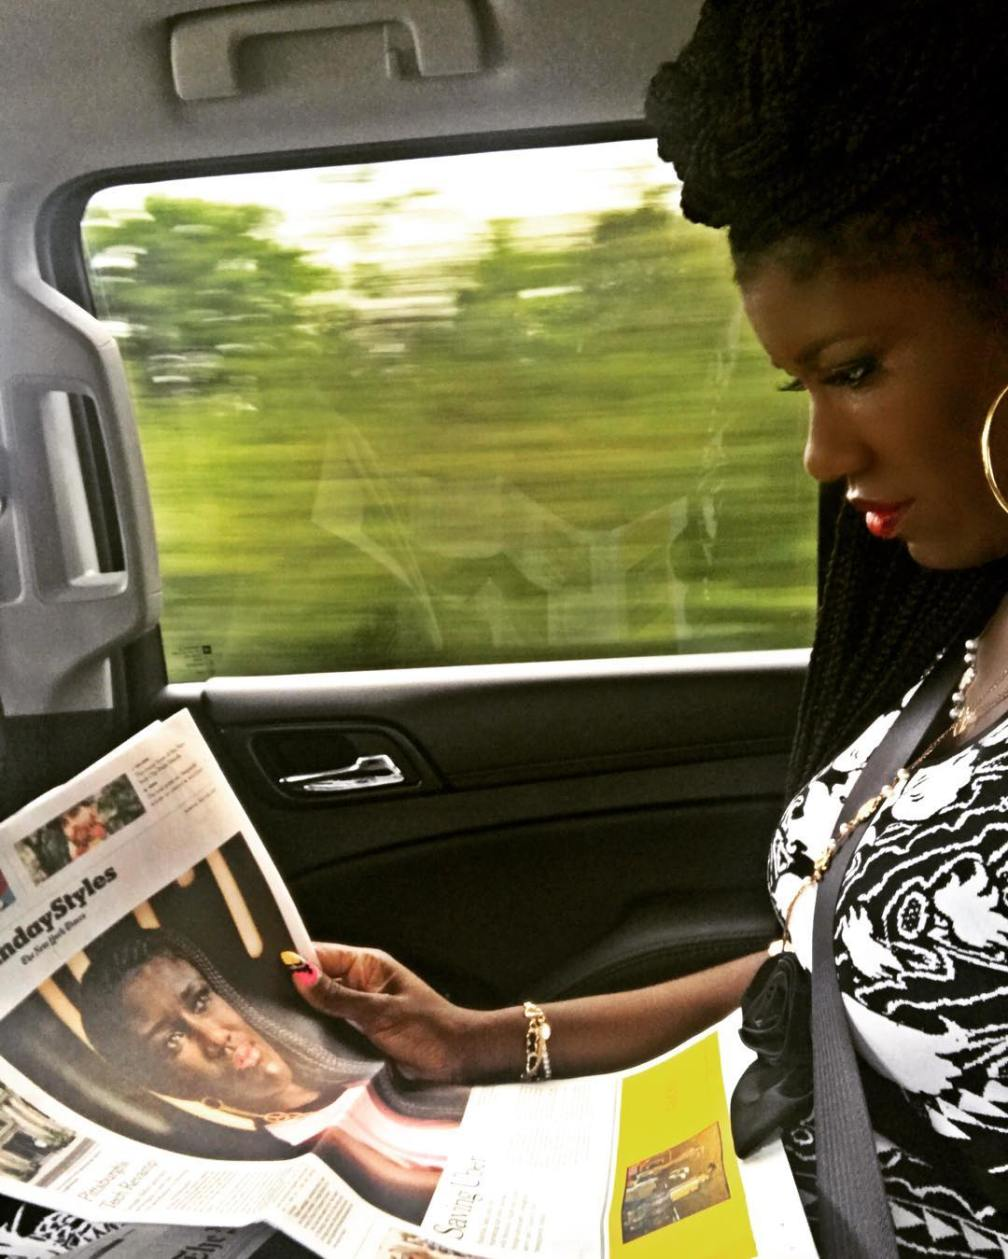 Gazing at the goodness of God as I read my cover story article in the Sunday style section of the @nytimes on my way to church this Sunday morning... and I feel like testifying! 🙌🏿 Listen here... my journey has had its share of ups and downs, but what I know for certain is that the adage is true-- the Will of God will never take you where the Grace of God can not keep you.  So this morning I give thanks knowing that my steps are divinely ordered... so get out of my way! I'm coming for what is mine! AMEN?? I'm also giving thanks for my 15,000 @uber colleagues who are doing an amazing job of evolving the company and our service. Teamwork makes the dreamwork... AMEN?? Last but certainly not least, I'm thankful for the incredible talent of @sheilaym who has told my story so well (link in bio) #thankfulheart #SundaySermon #blackgirlmagic